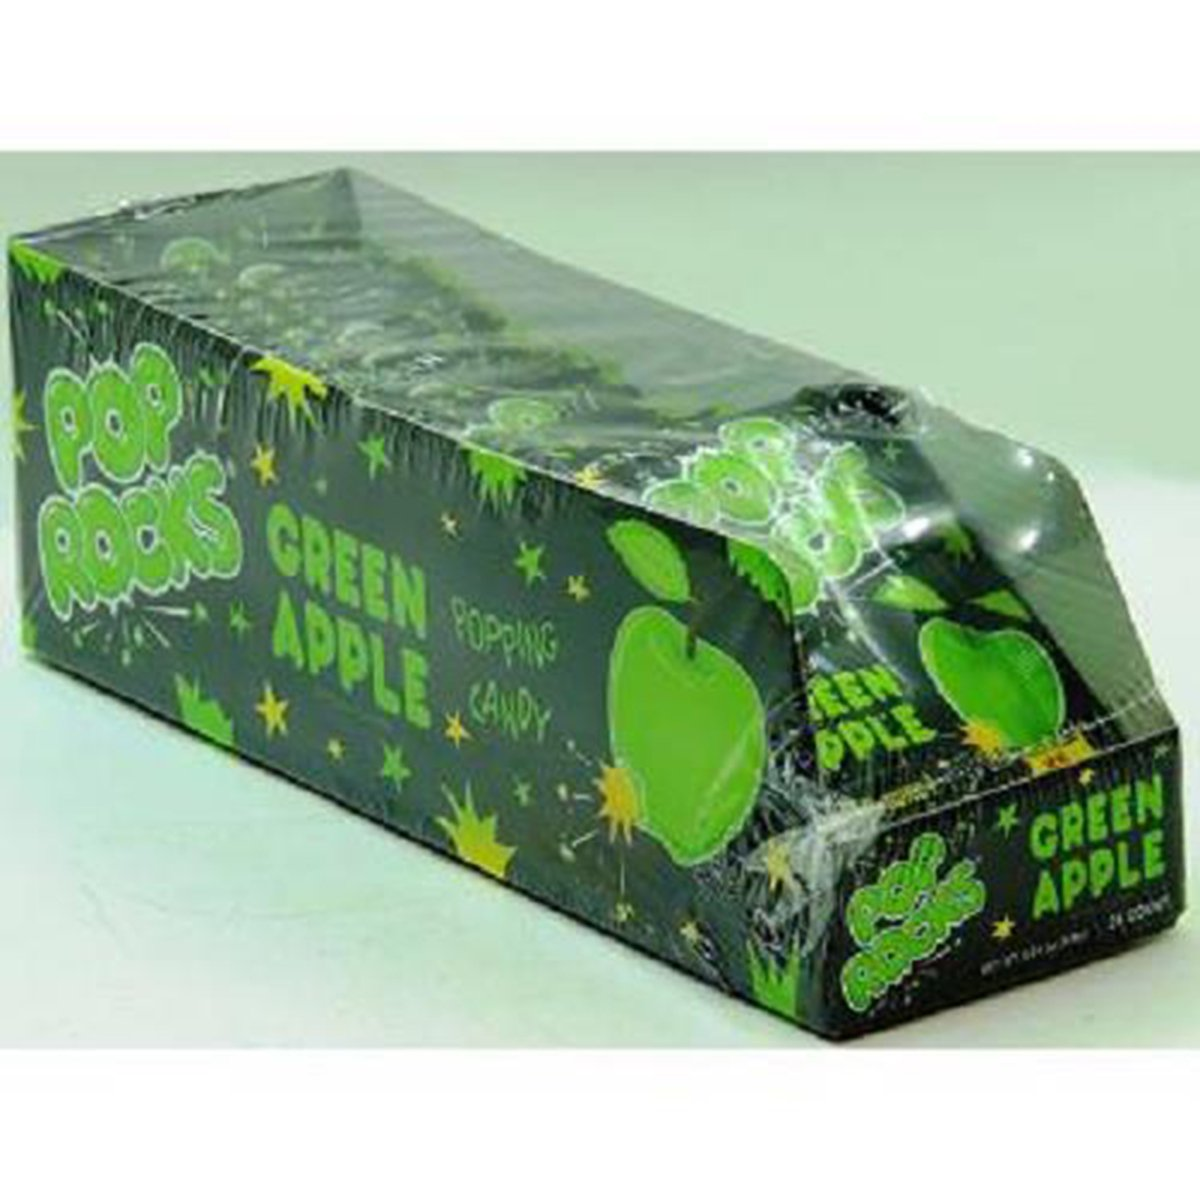 Product Of Pop Rocks, Green Apple, Count 24 (0.33 oz) - Sugar Candy / Grab Varieties & Flavors